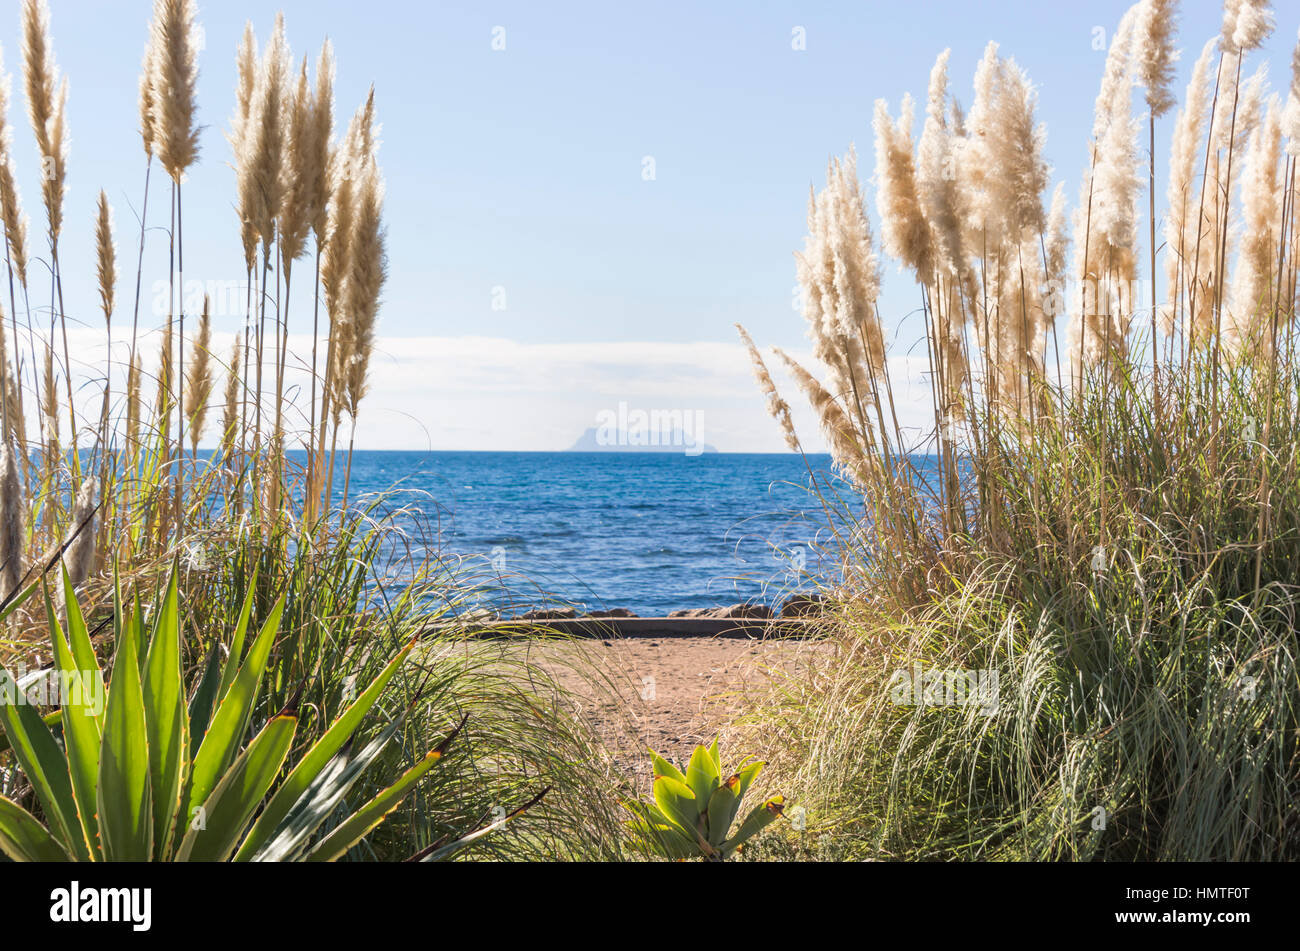 Far view of Gibraltar from Estepona, Costa del Sol, malaga, Spain. - Stock Image